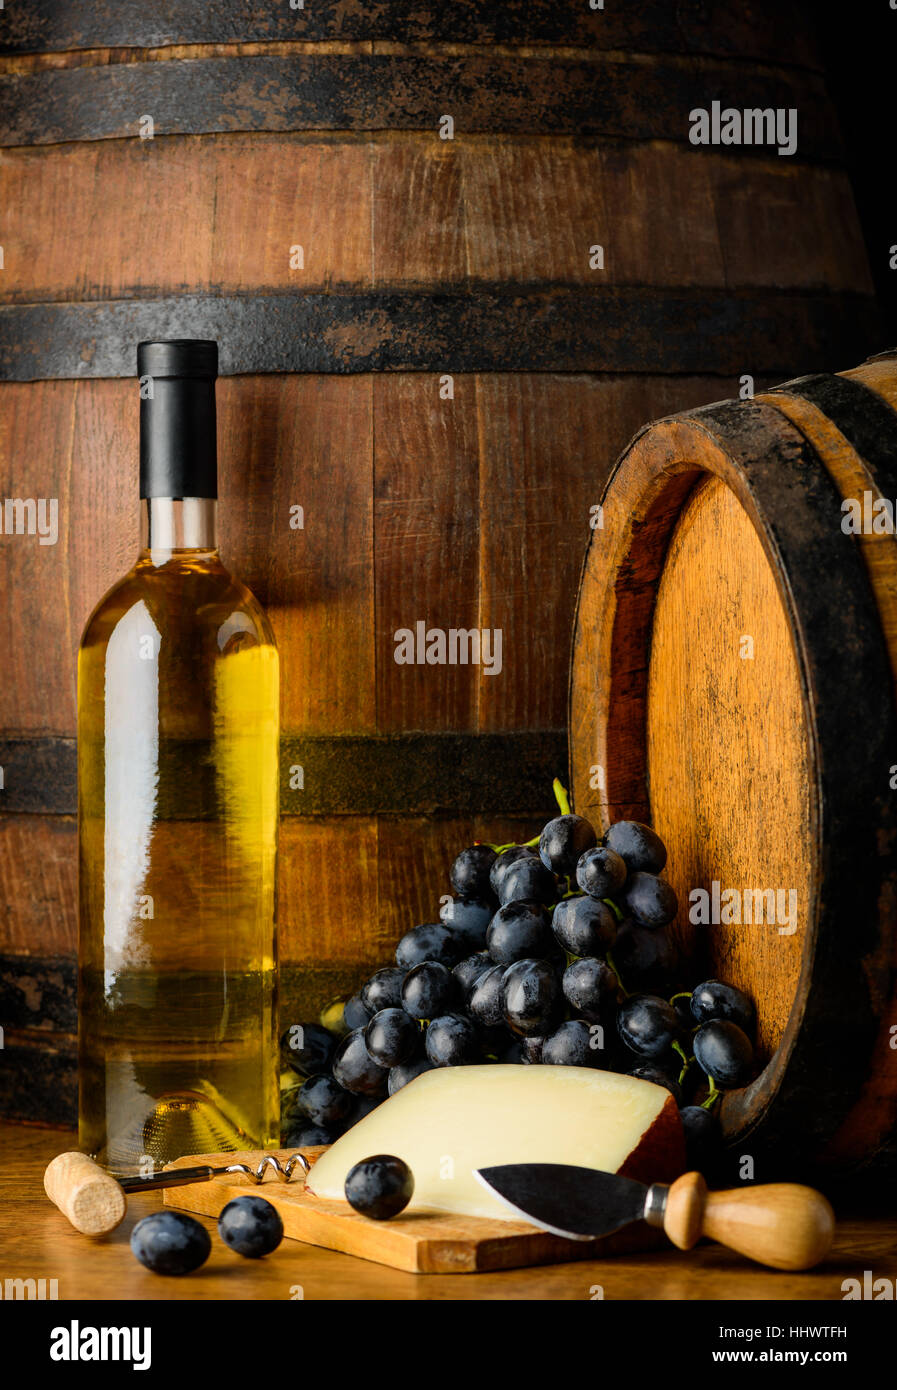 White wine in bottle with dark grapes and chese with wooden background - Stock Image